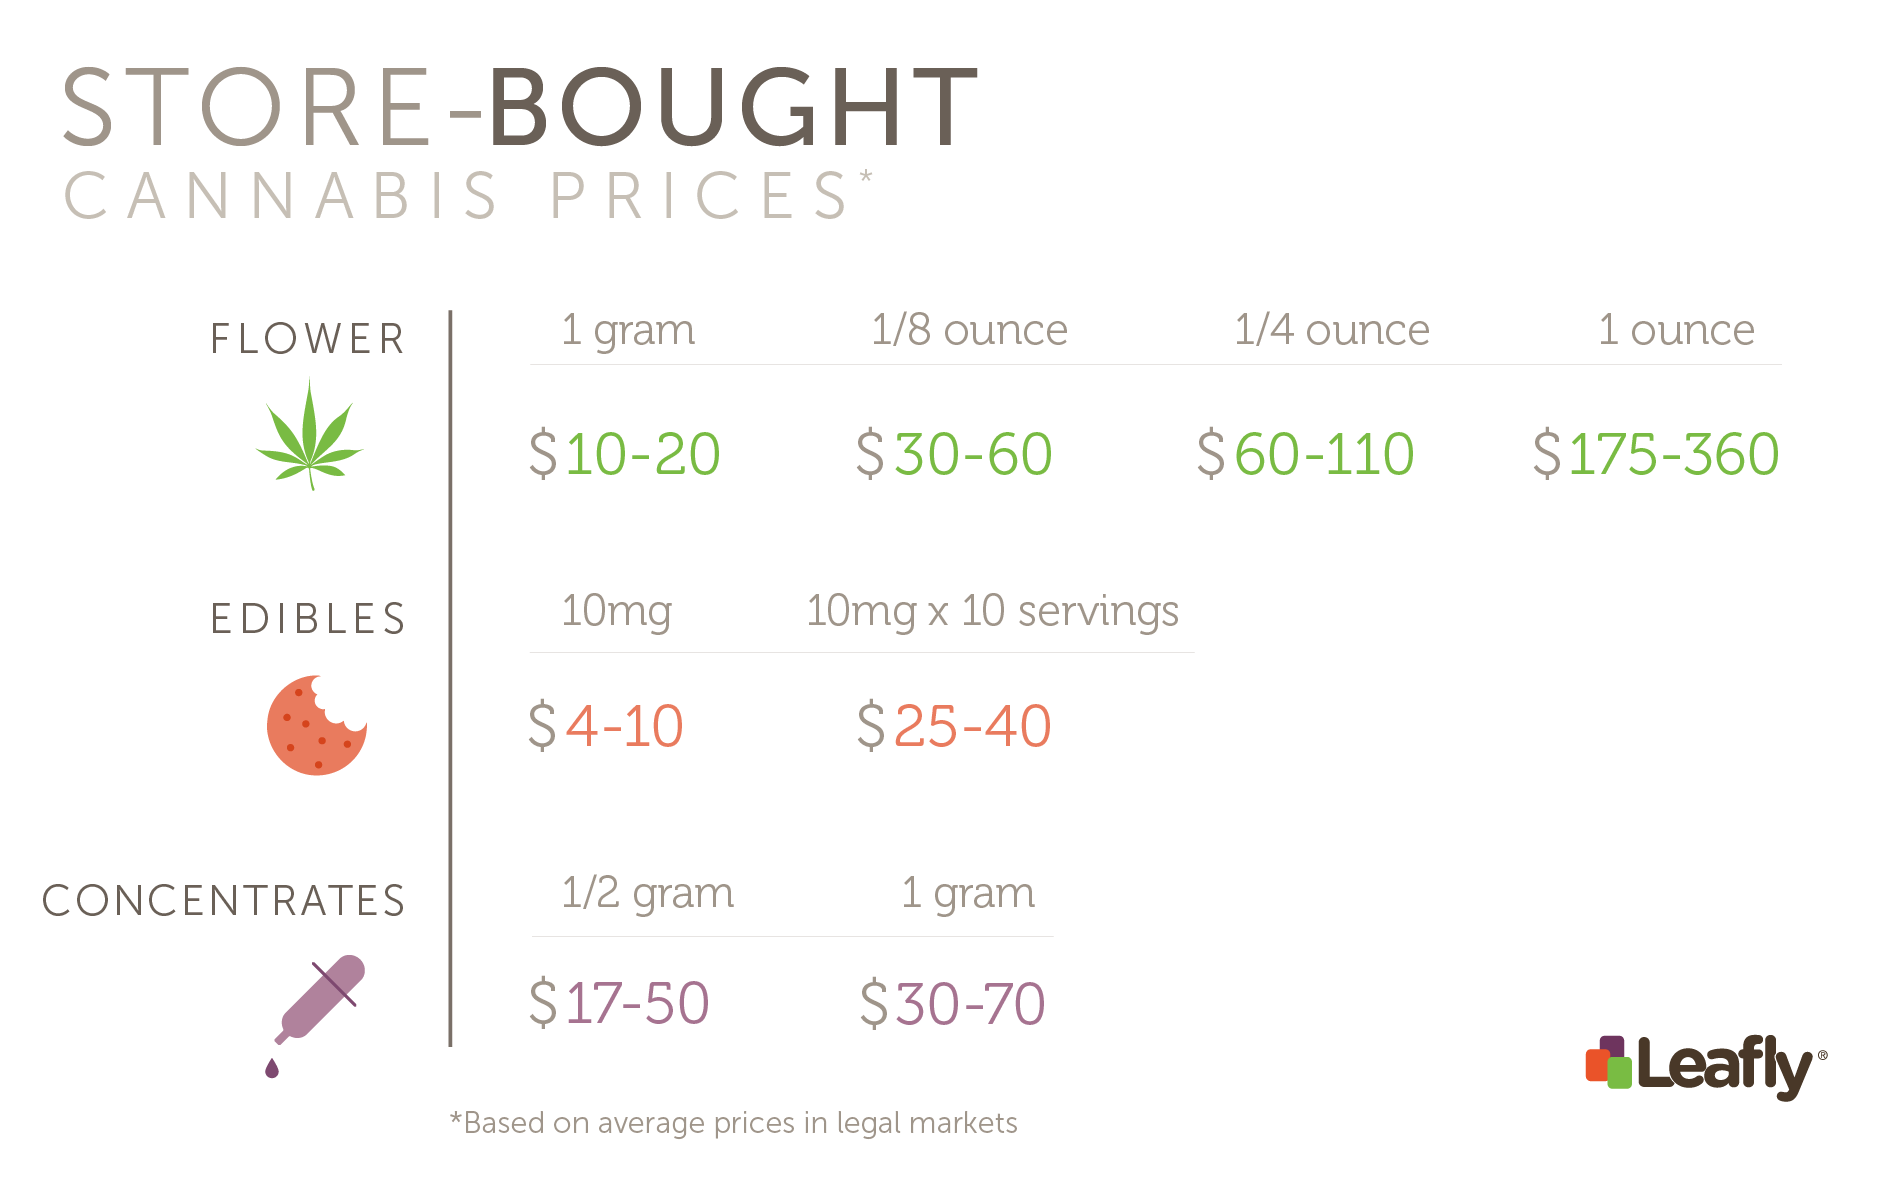 Costs of growing cannabis at home vs buying bud at a dispensary costs estimates of store bought cannabis solutioingenieria Images